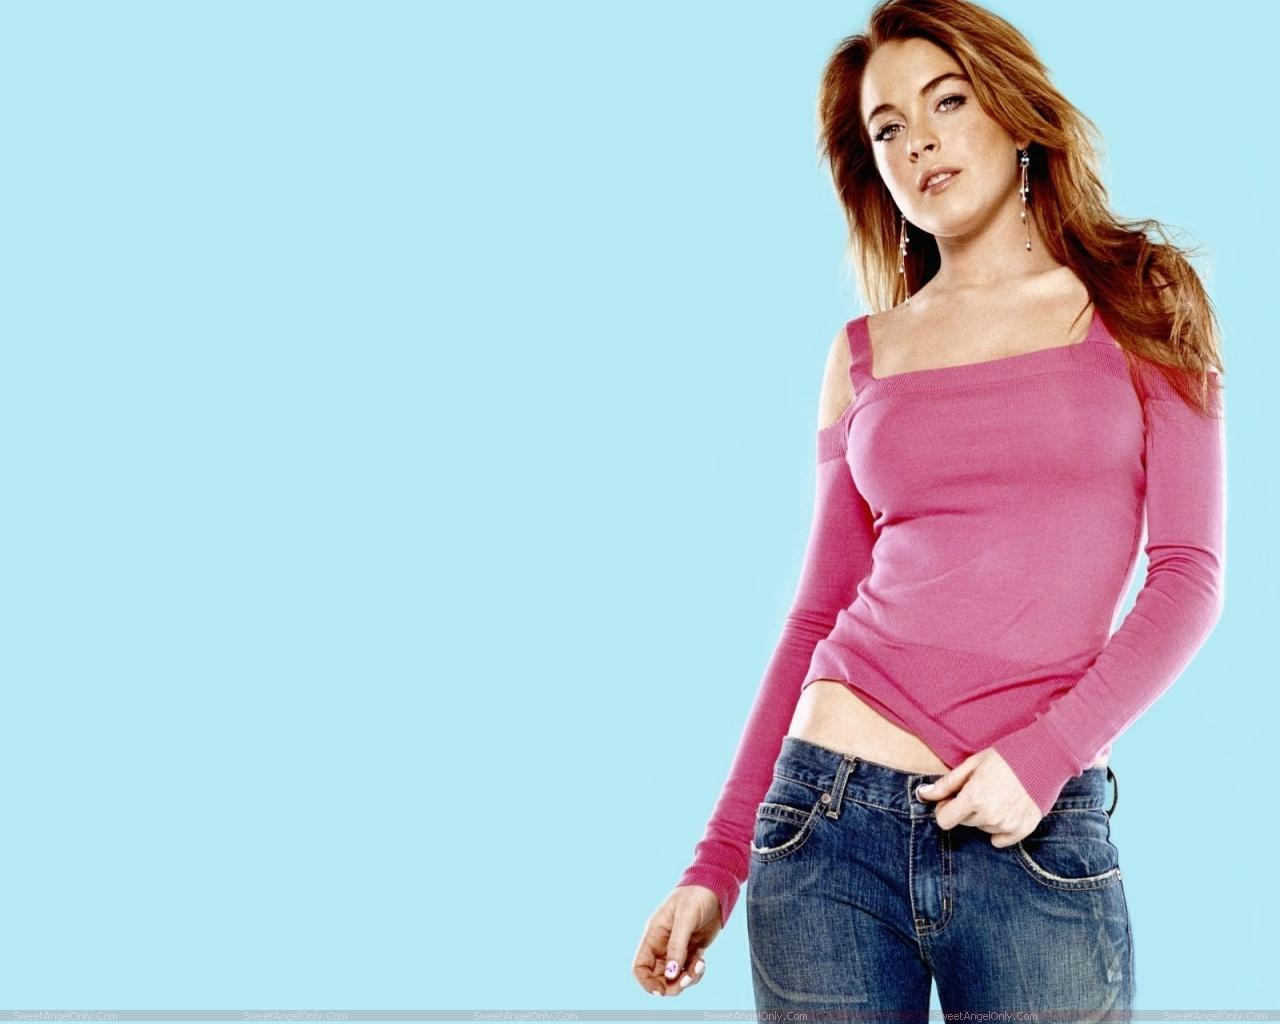 http://2.bp.blogspot.com/-gpmfZgyZak4/TYcCiXfrShI/AAAAAAAAFwE/xnpAUtBiWtY/s1600/lindsay_lohan_hollywood_hot_actress_wallpaper_sweetangelonly_30.jpg